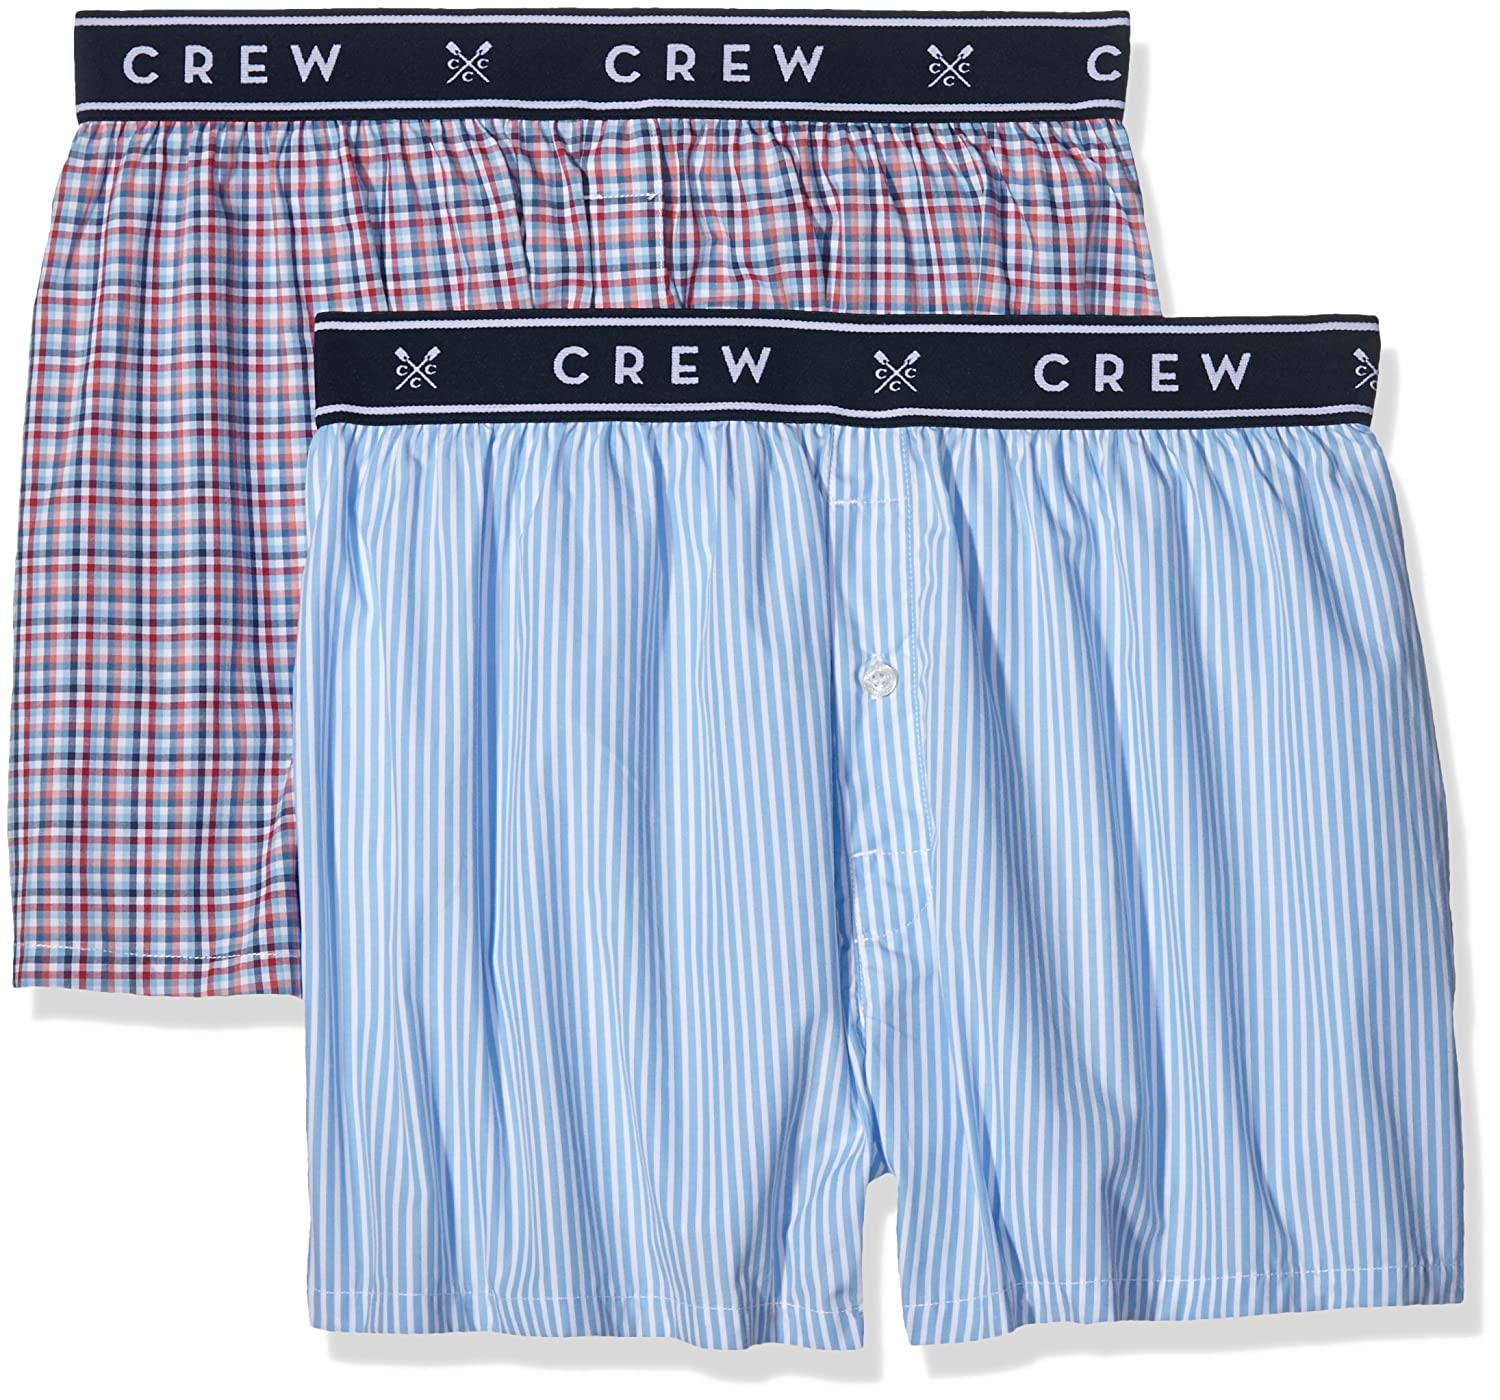 Crew Clothing Men's Pack of 2 Woven Boxer Shorts